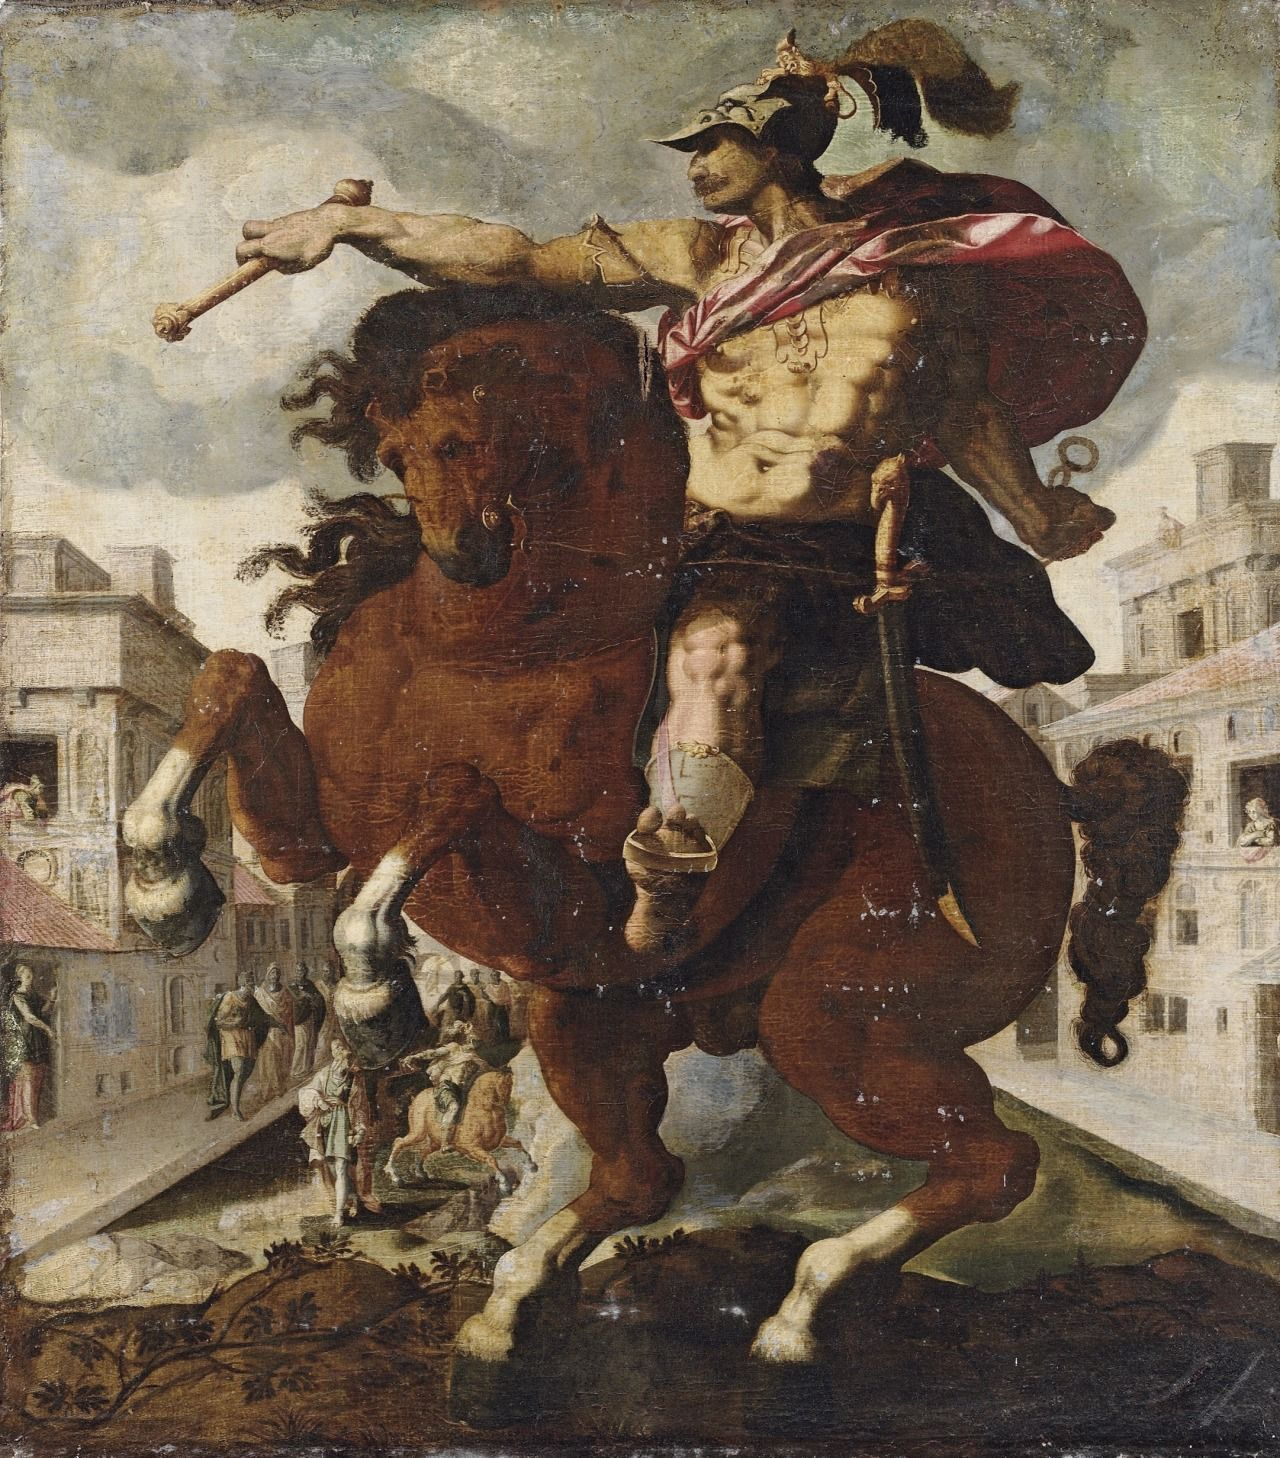 .:. Marcus Curtius, oil on canvas, 119 × 104 cm. Obviously based on Hendrick Goltzius' print from the 1586 series The Roman Heroes.